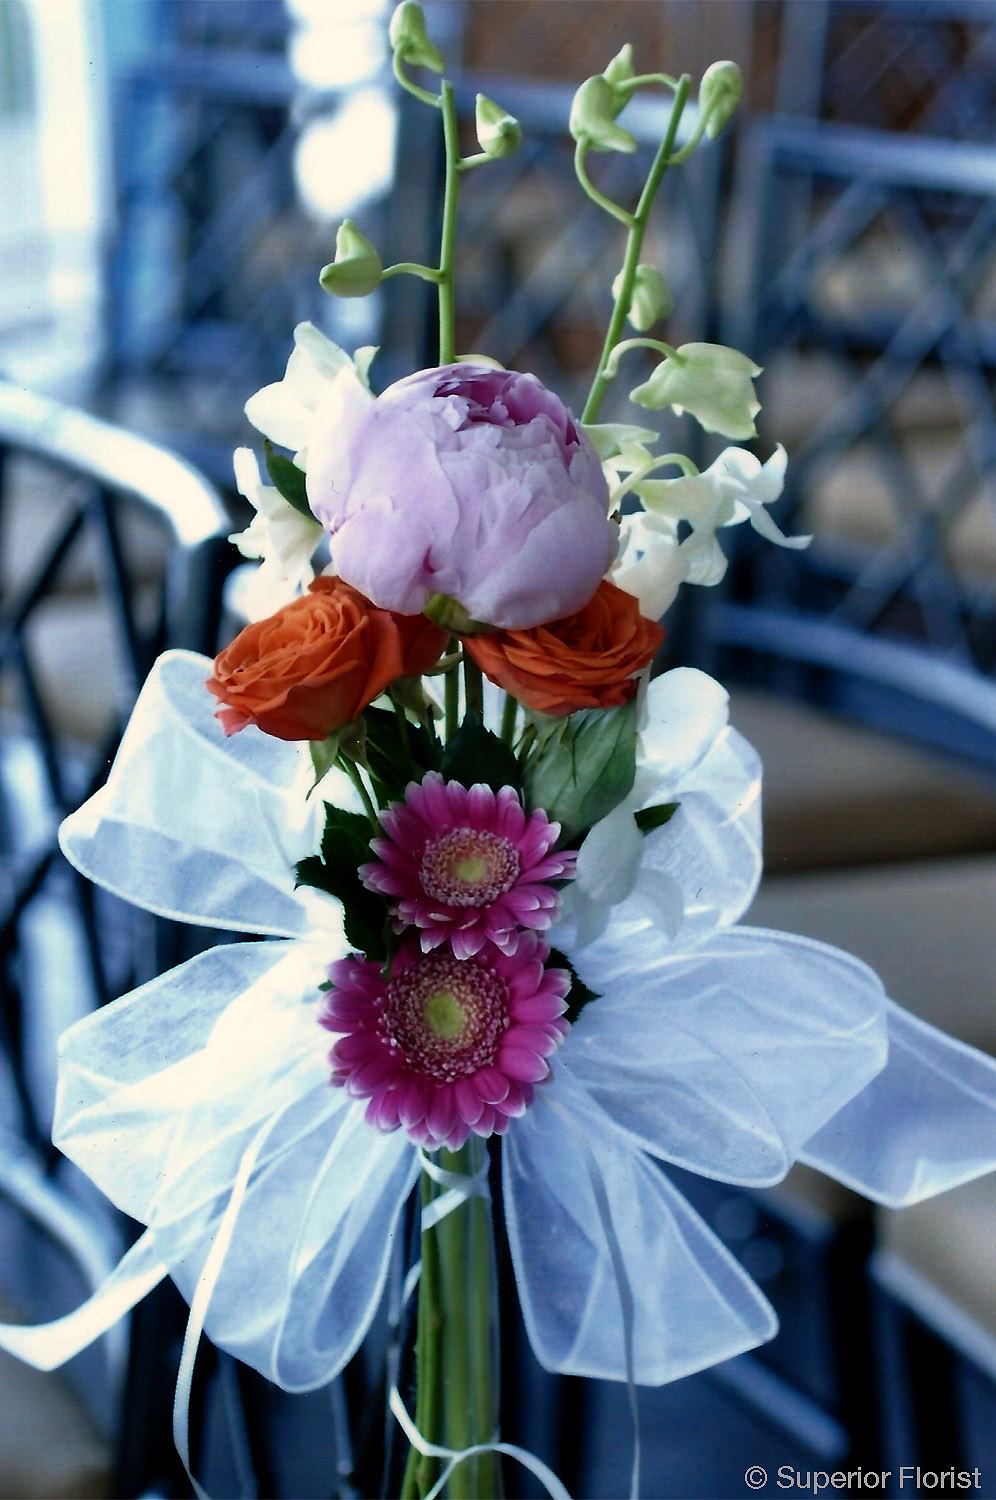 Superior Florist – Wedding Décor:  Chair bouquet of flowers with organza ribbon.